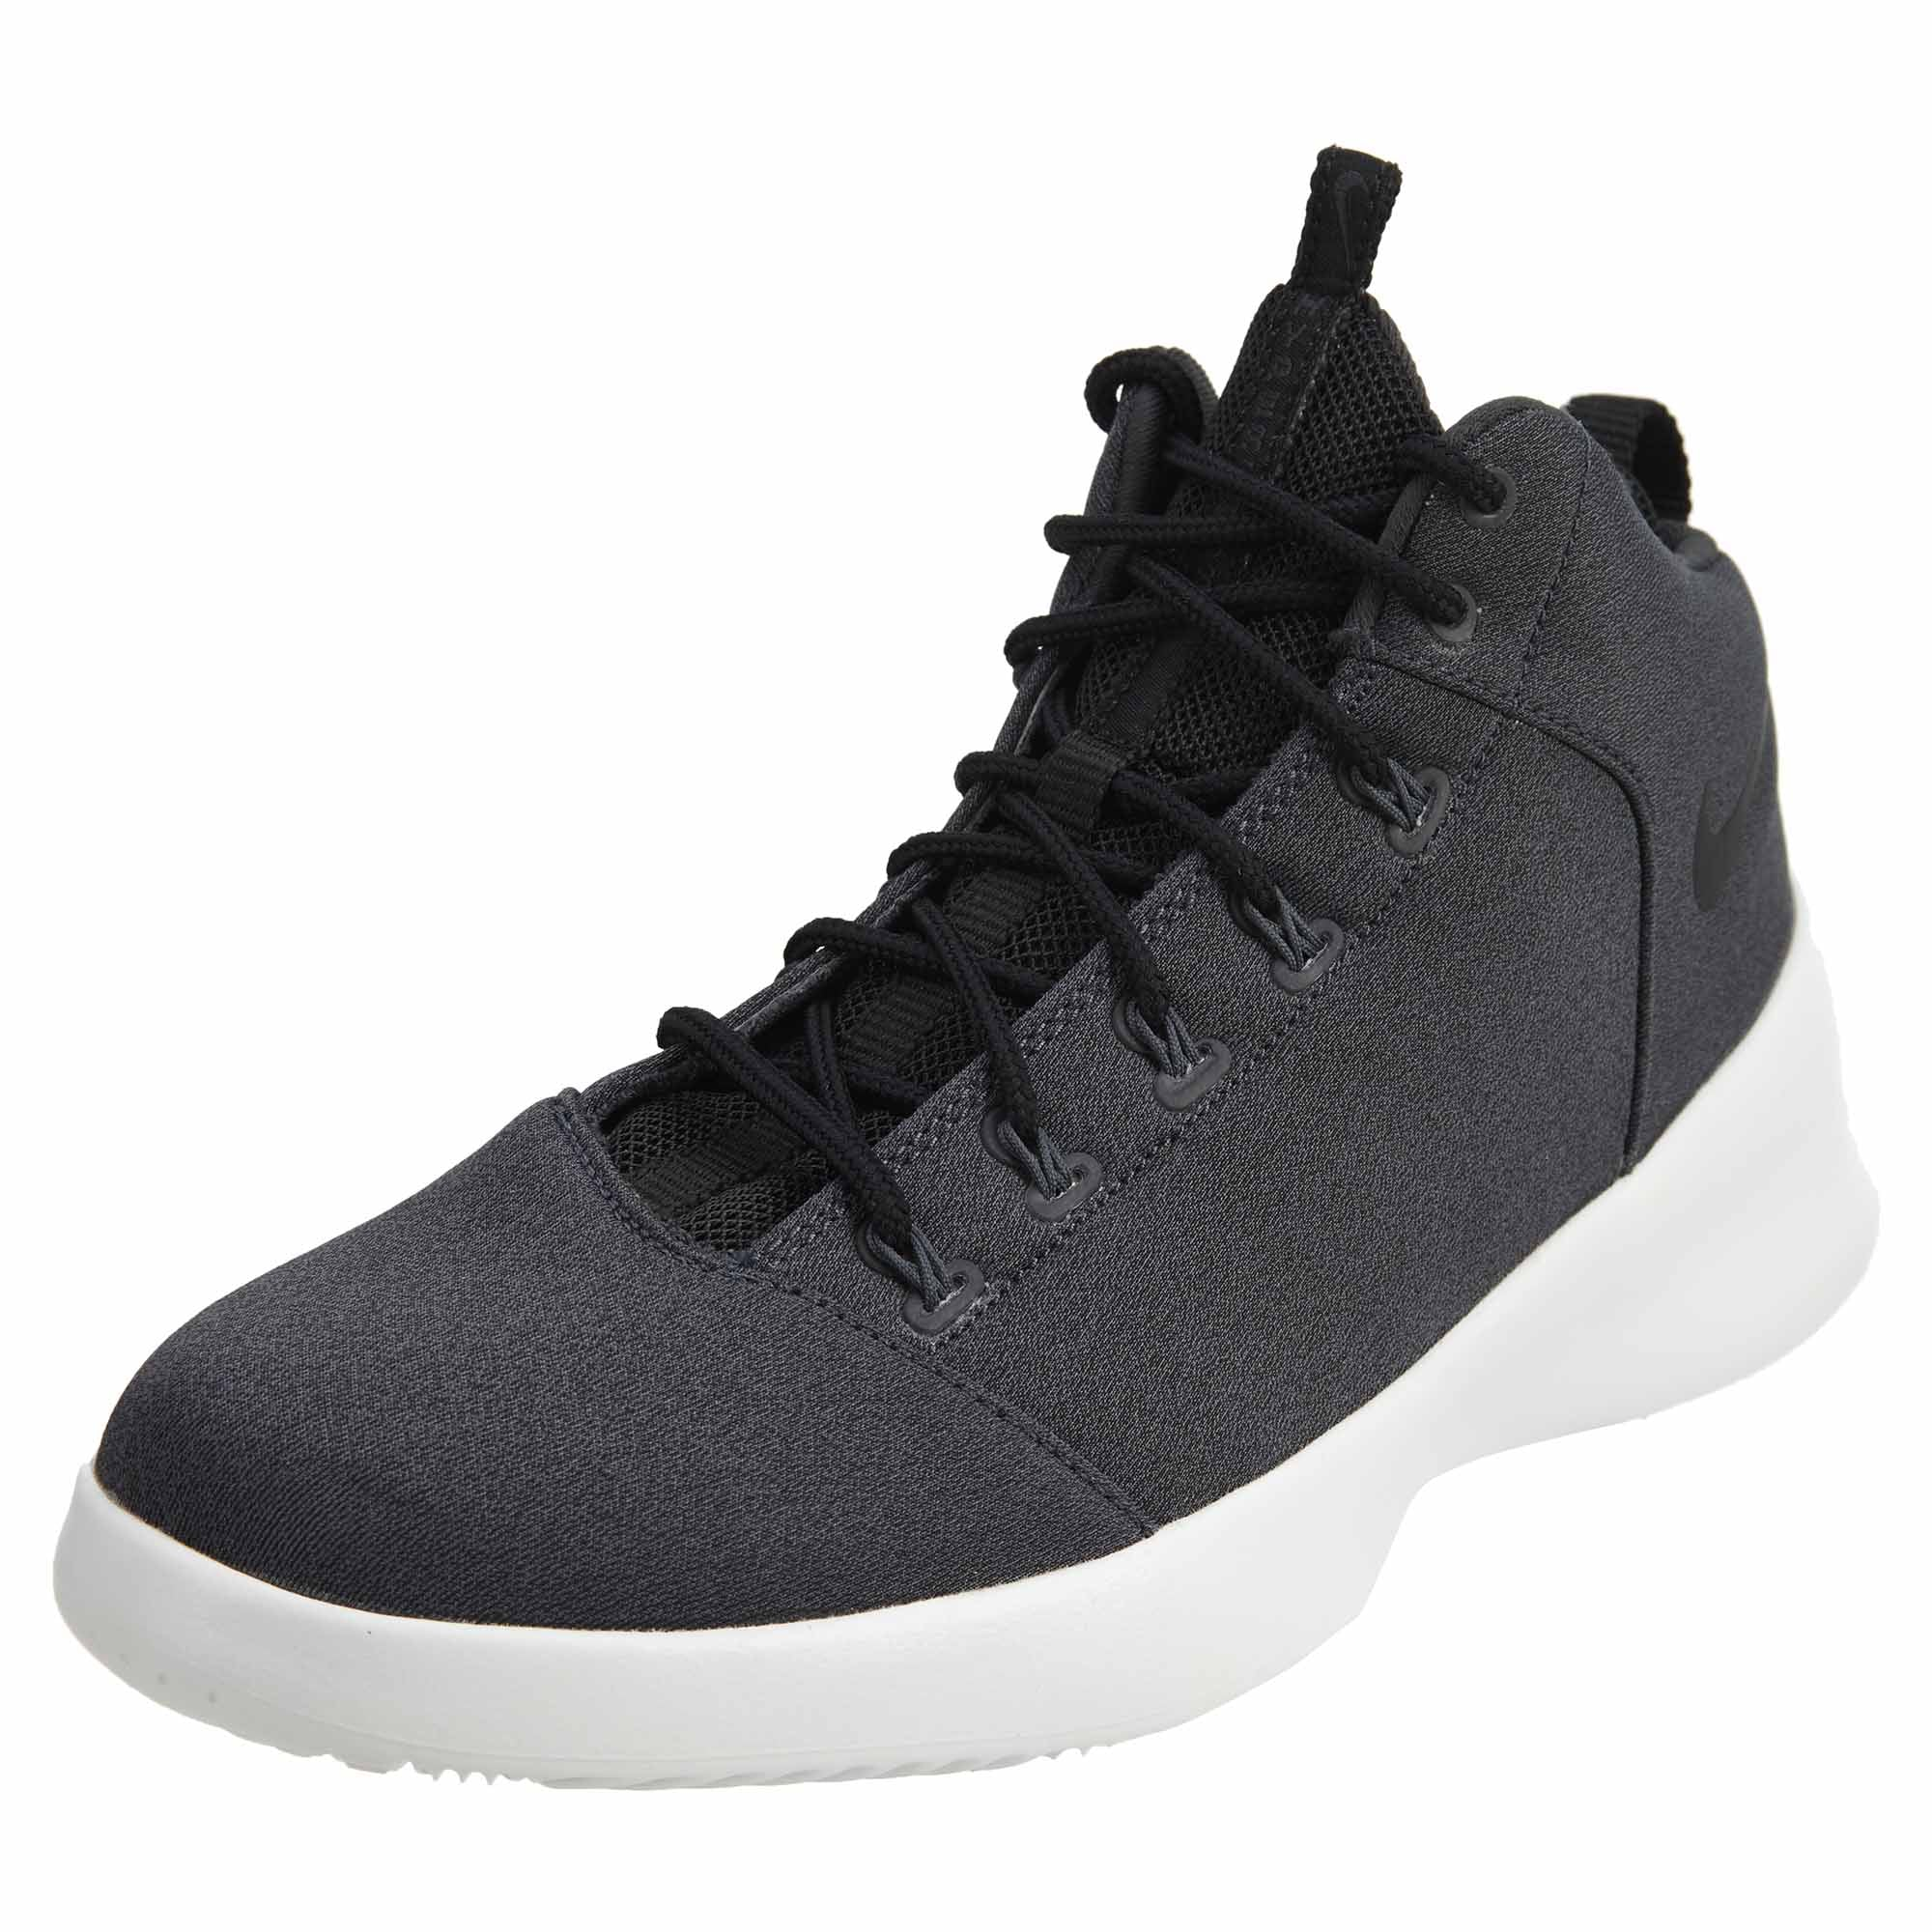 low priced 8d8df f45be Nike Hyperfr3sh Mens Style   759996 – TheEagleShoes